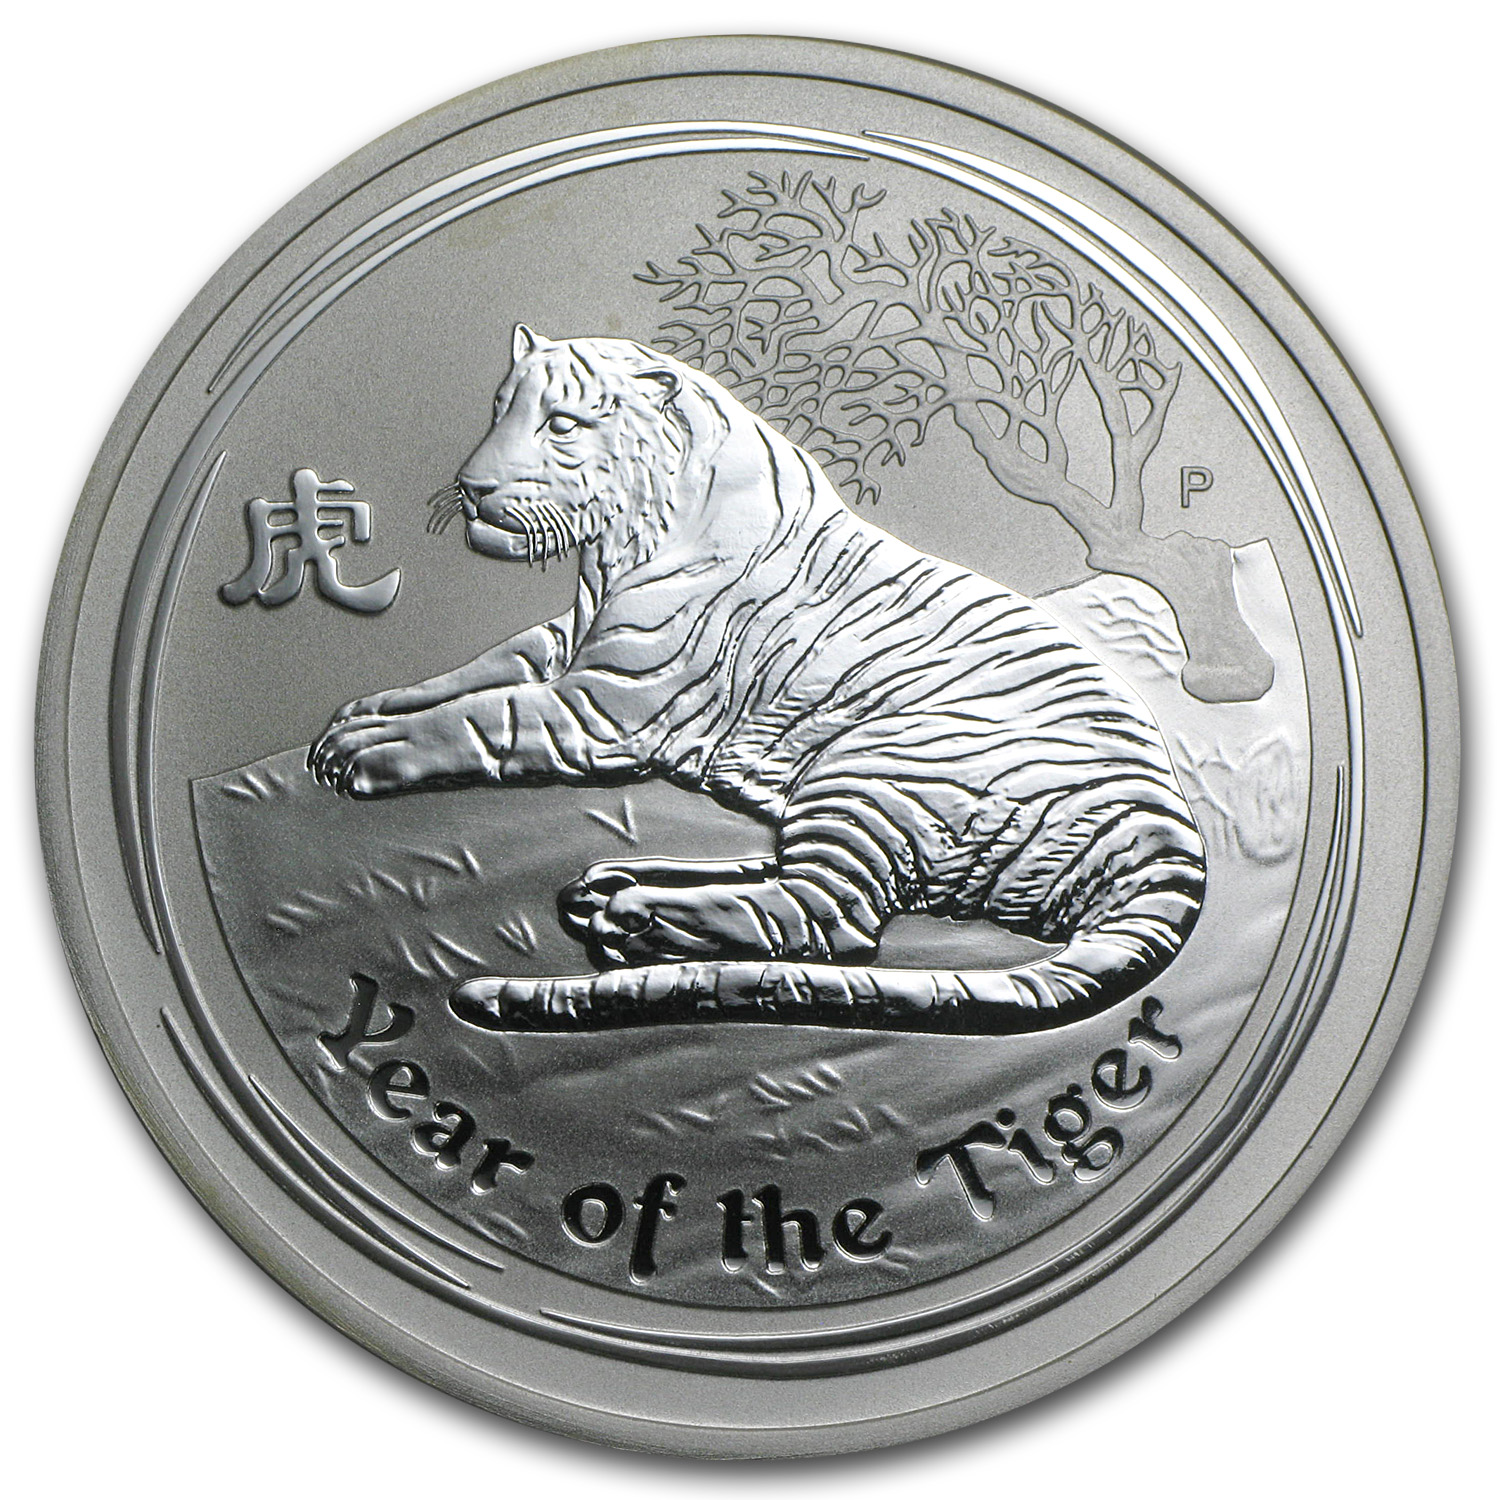 2010 2 oz Silver Australian Year of the Tiger Coin (SII) (Spots)